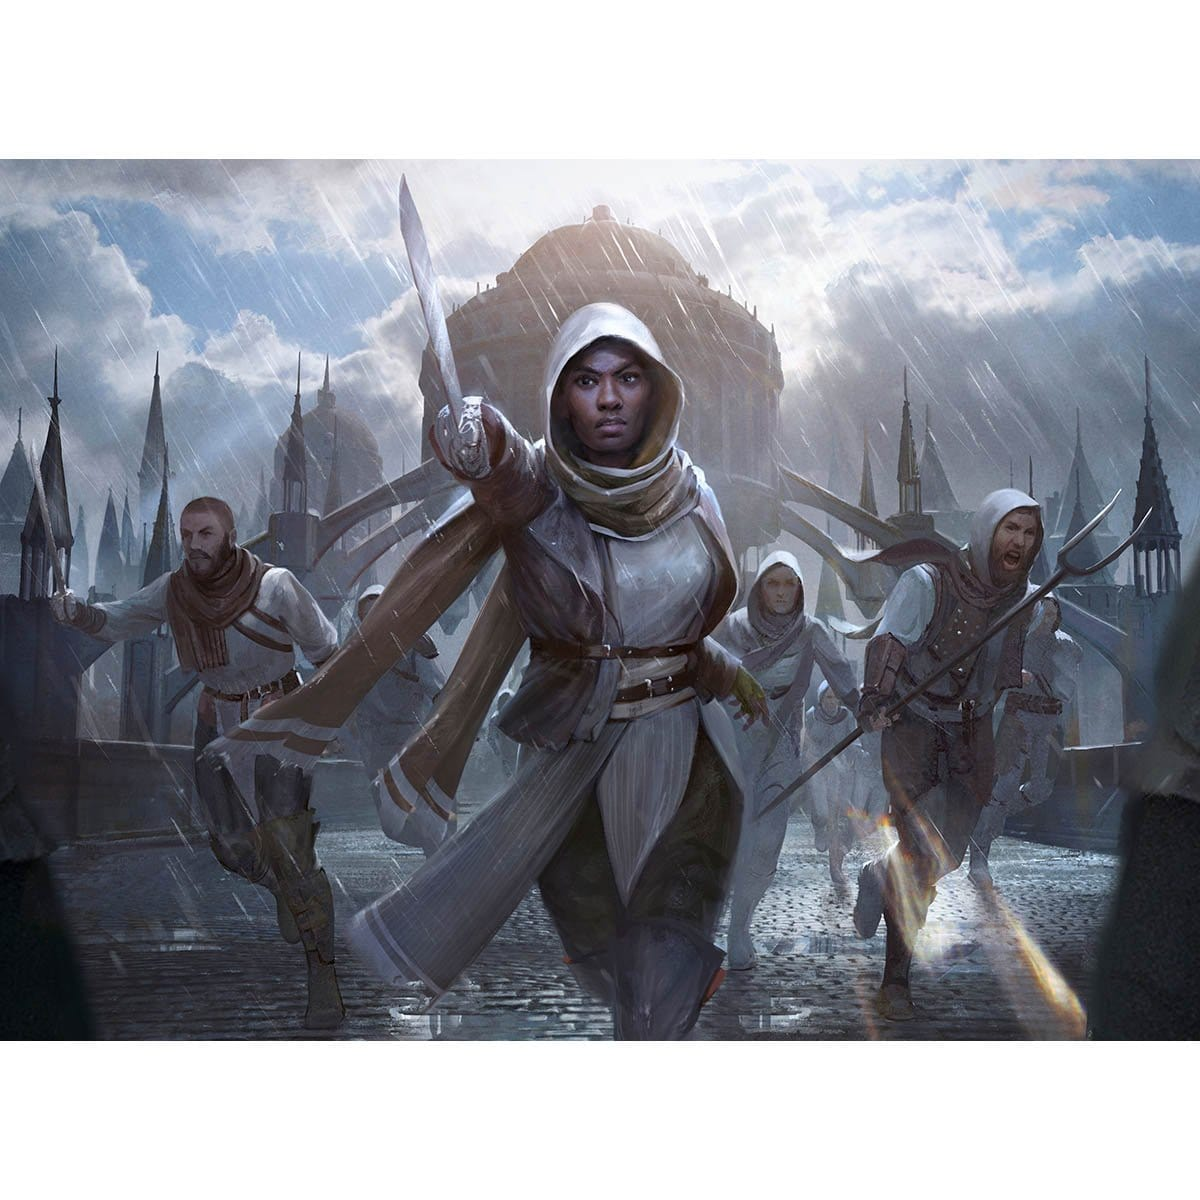 Hero of Precinct One Print - Print - Original Magic Art - Accessories for Magic the Gathering and other card games